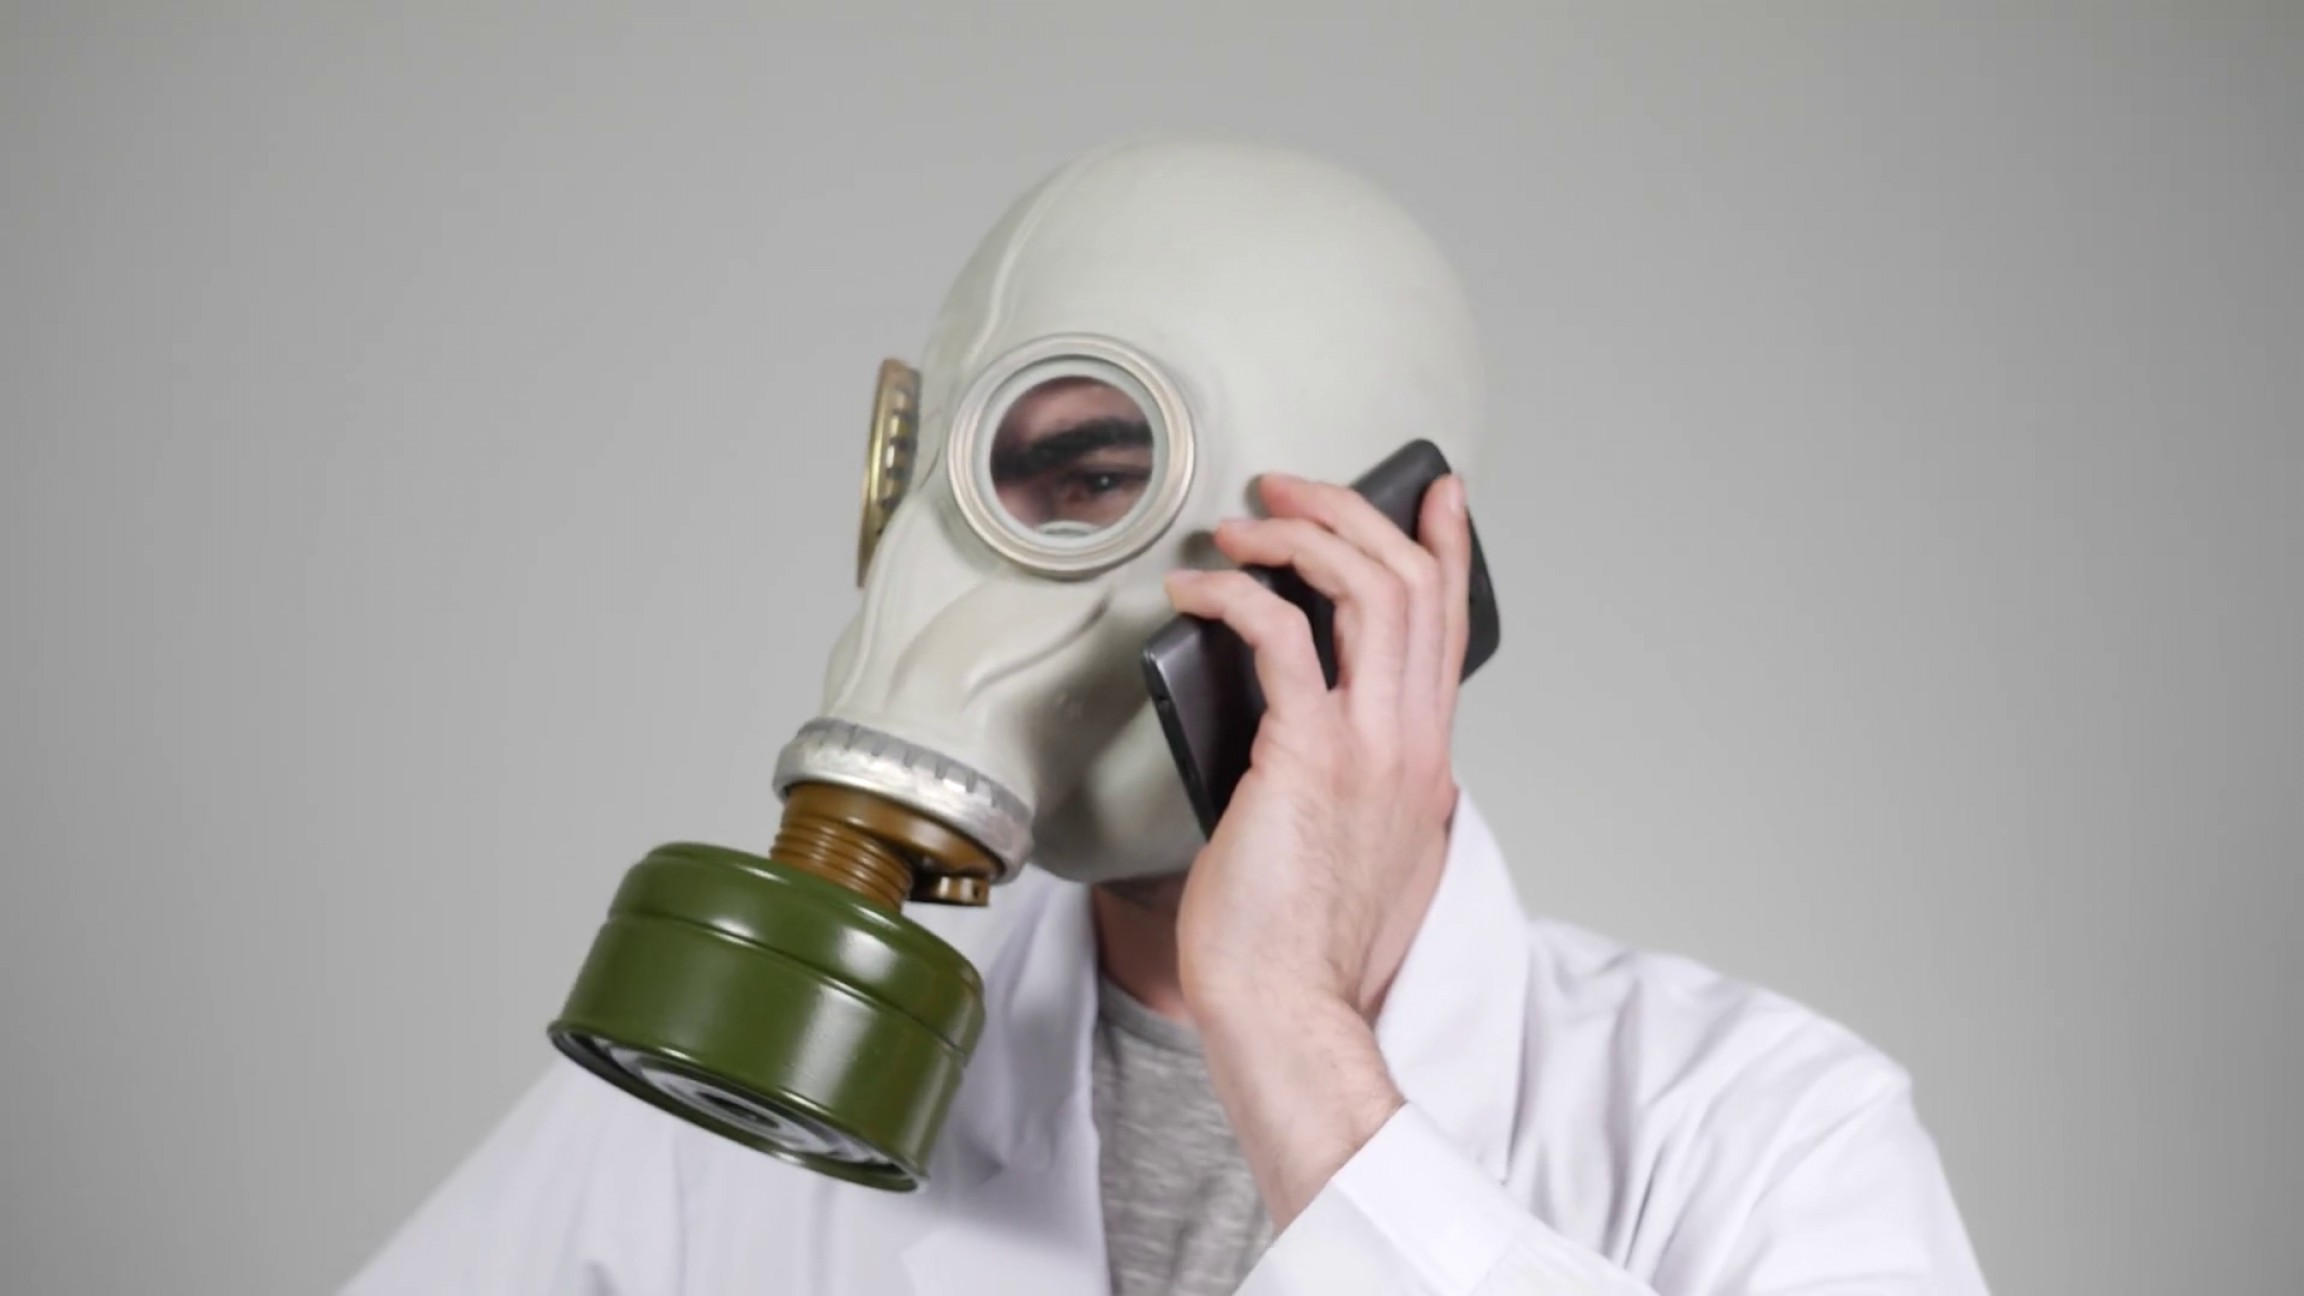 Gas Mask Suit And Tie Vector: Wearing A Gas Mask And Talking On The Phone Ricaww Ebjjiop